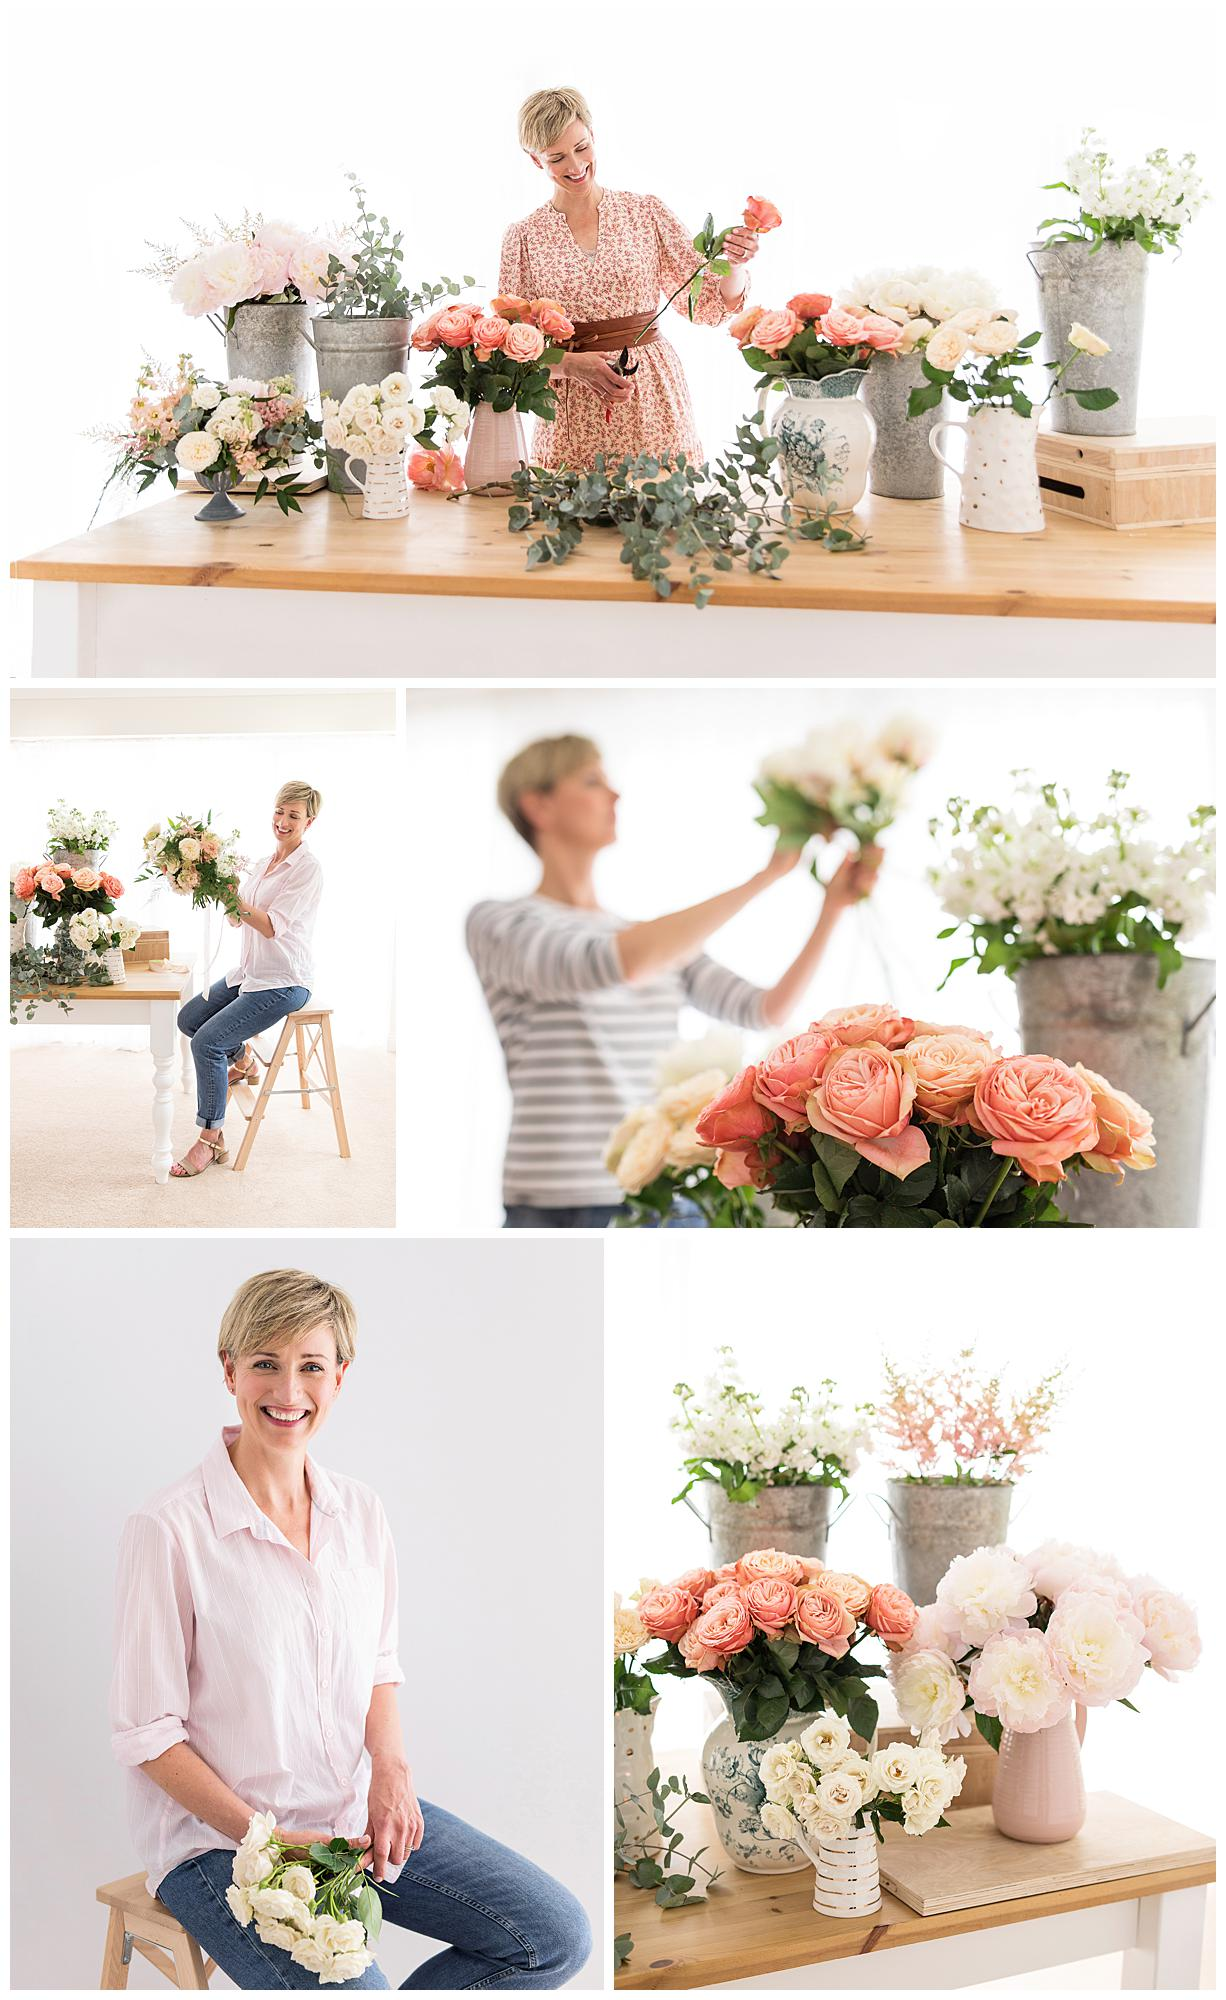 Collage of personal branding images of a Florist holding roses and peonies in Suffolk